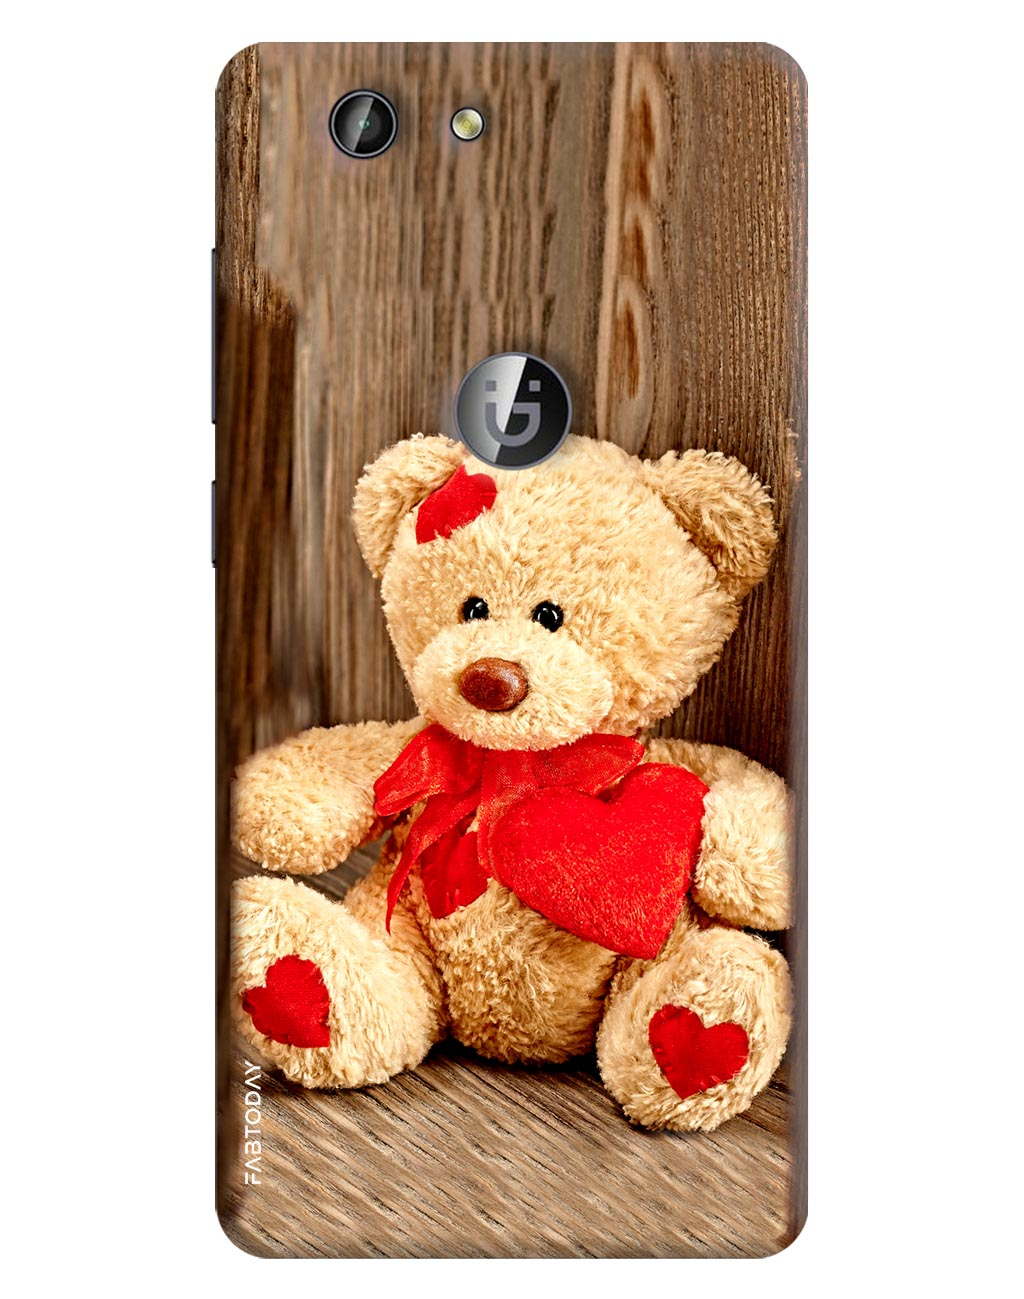 Teddy Back Cover for Gionee F103 Pro